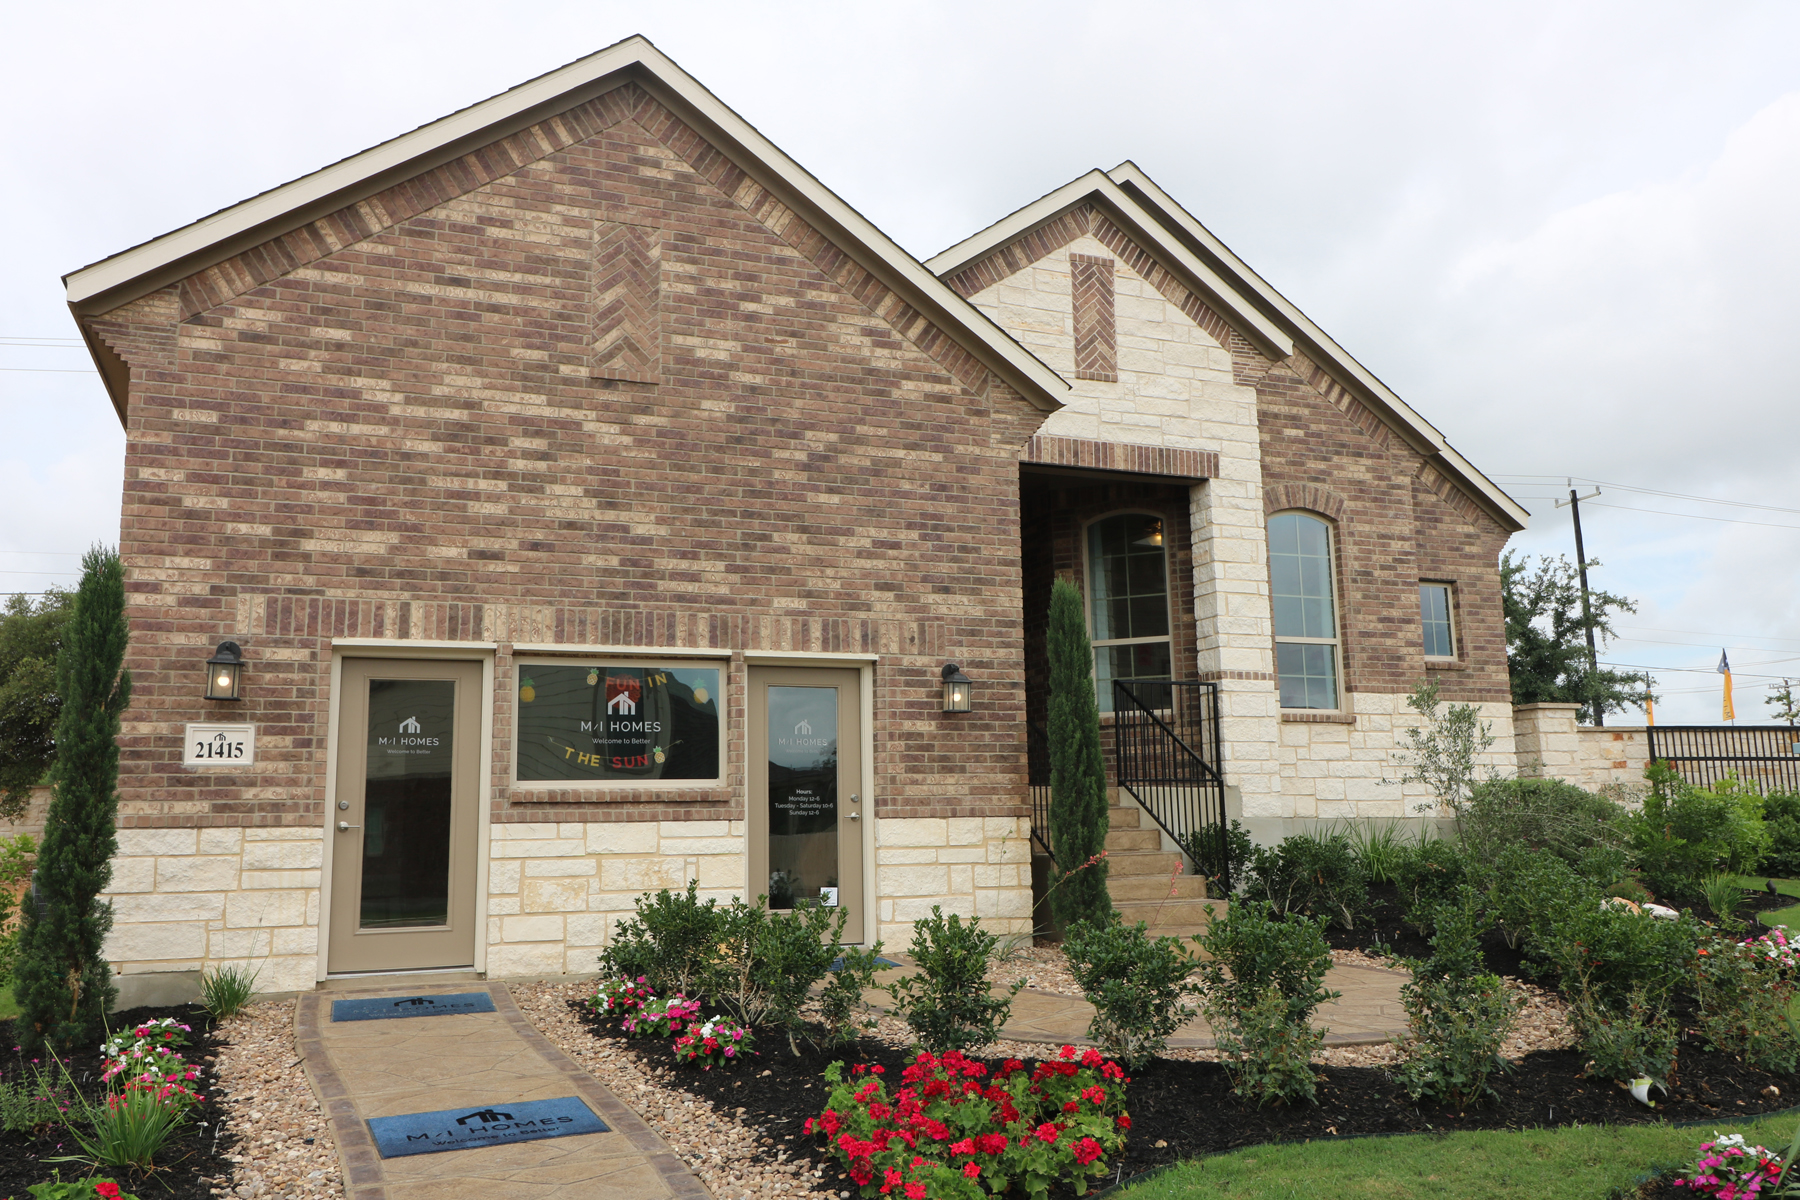 Ravello - Homes for Sale in San Antonio, TX - M/I Homes on design of the america's center, toll brothers design center, k. hovnanian design center, dr horton design center,